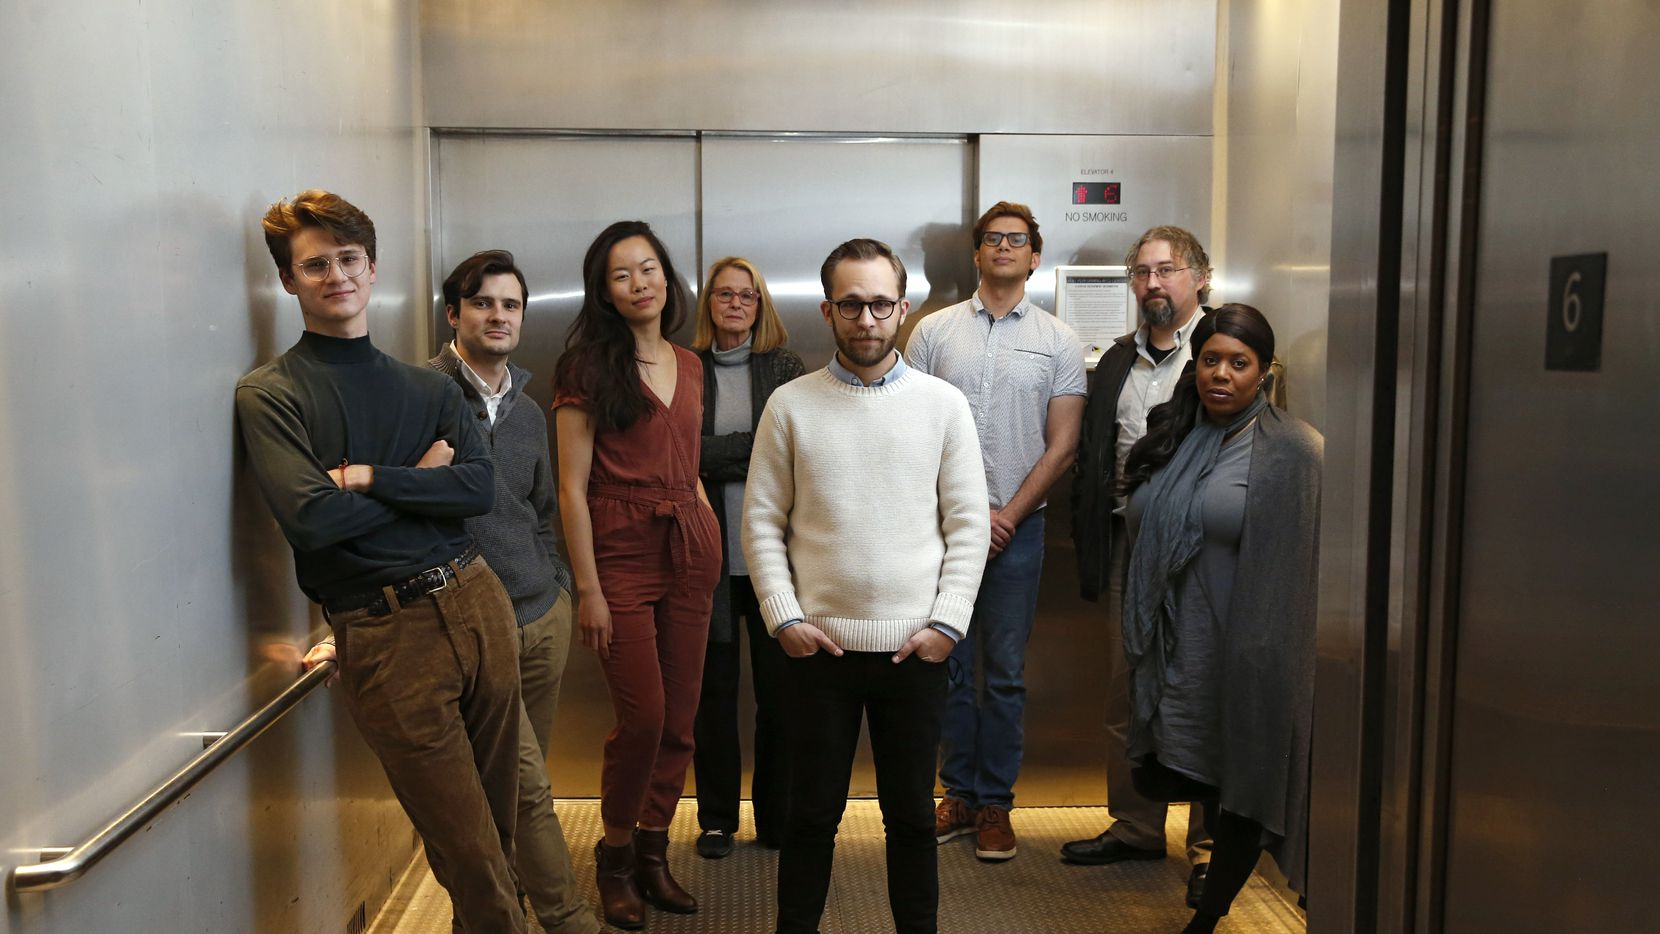 """Jeremy LeBlanc, Cory Kosel, Sydney Lo, Cindee Mayfield, Jake Nice, Jon Garrard, Brian Witkowicz, and Detra Payne  from the play """"Slide By,"""" pose for a portrait in the elevator on the sixth floor of the Studio Theatre at Wyly Theatre in Dallas on Tuesday, January 7, 2020."""